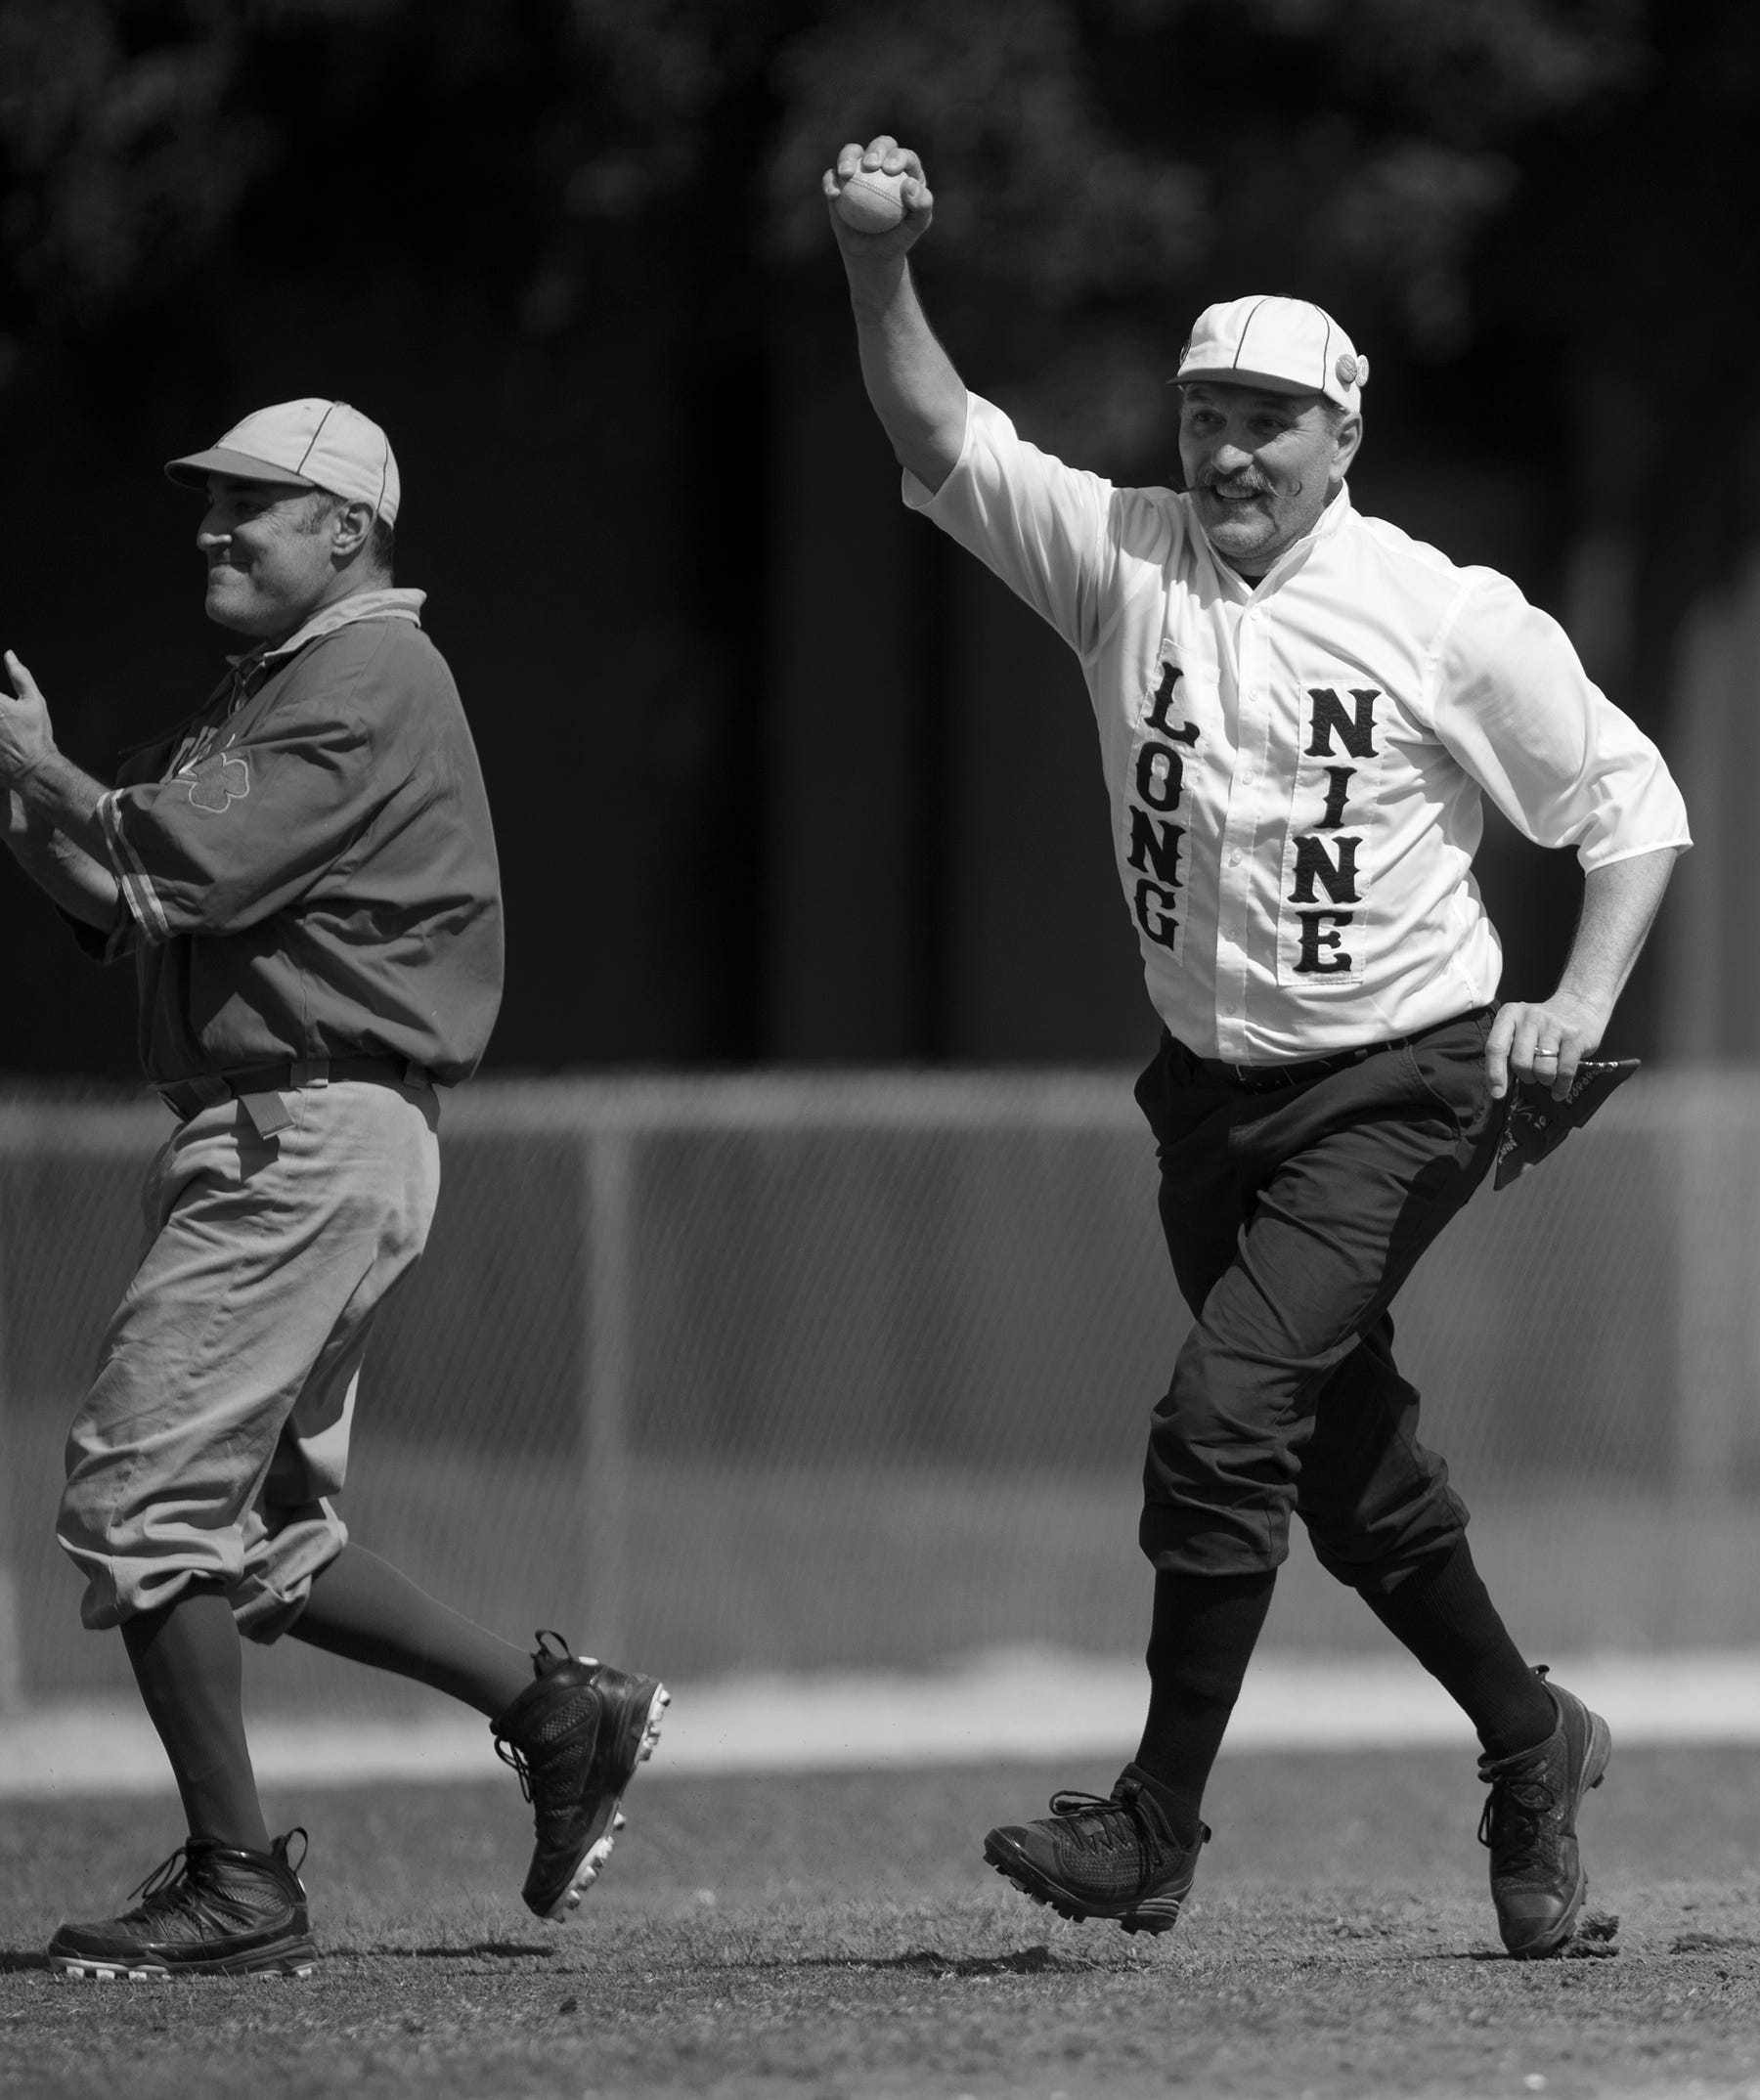 """Tim """"Super D"""" DeSherlia of the Springfield Long Nine plays against the Mudville Base Ball Club on Sunday at Terry Park in Fort Myers. Vintage baseball teams from throughout the country competed in the event presented by the Edison and Ford Winter Estates."""